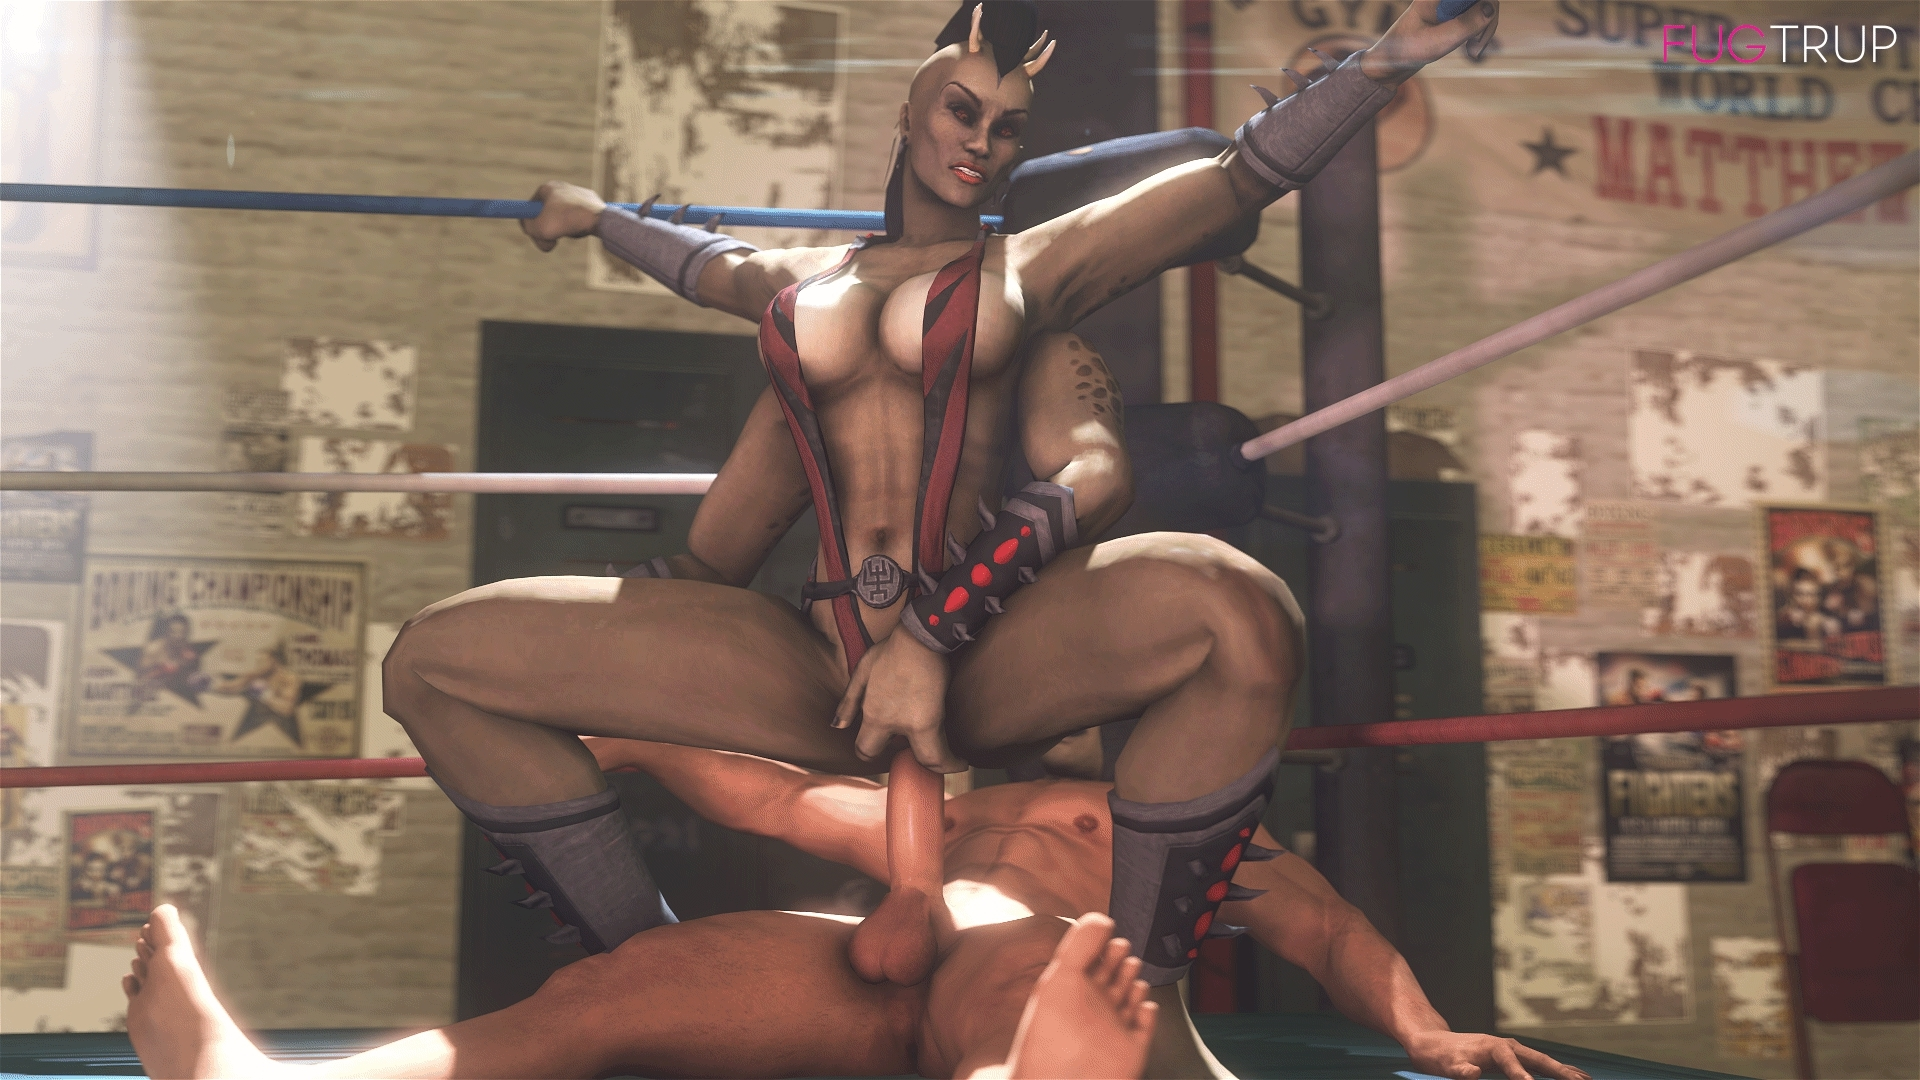 Mortal kombat porn gallery porno videos